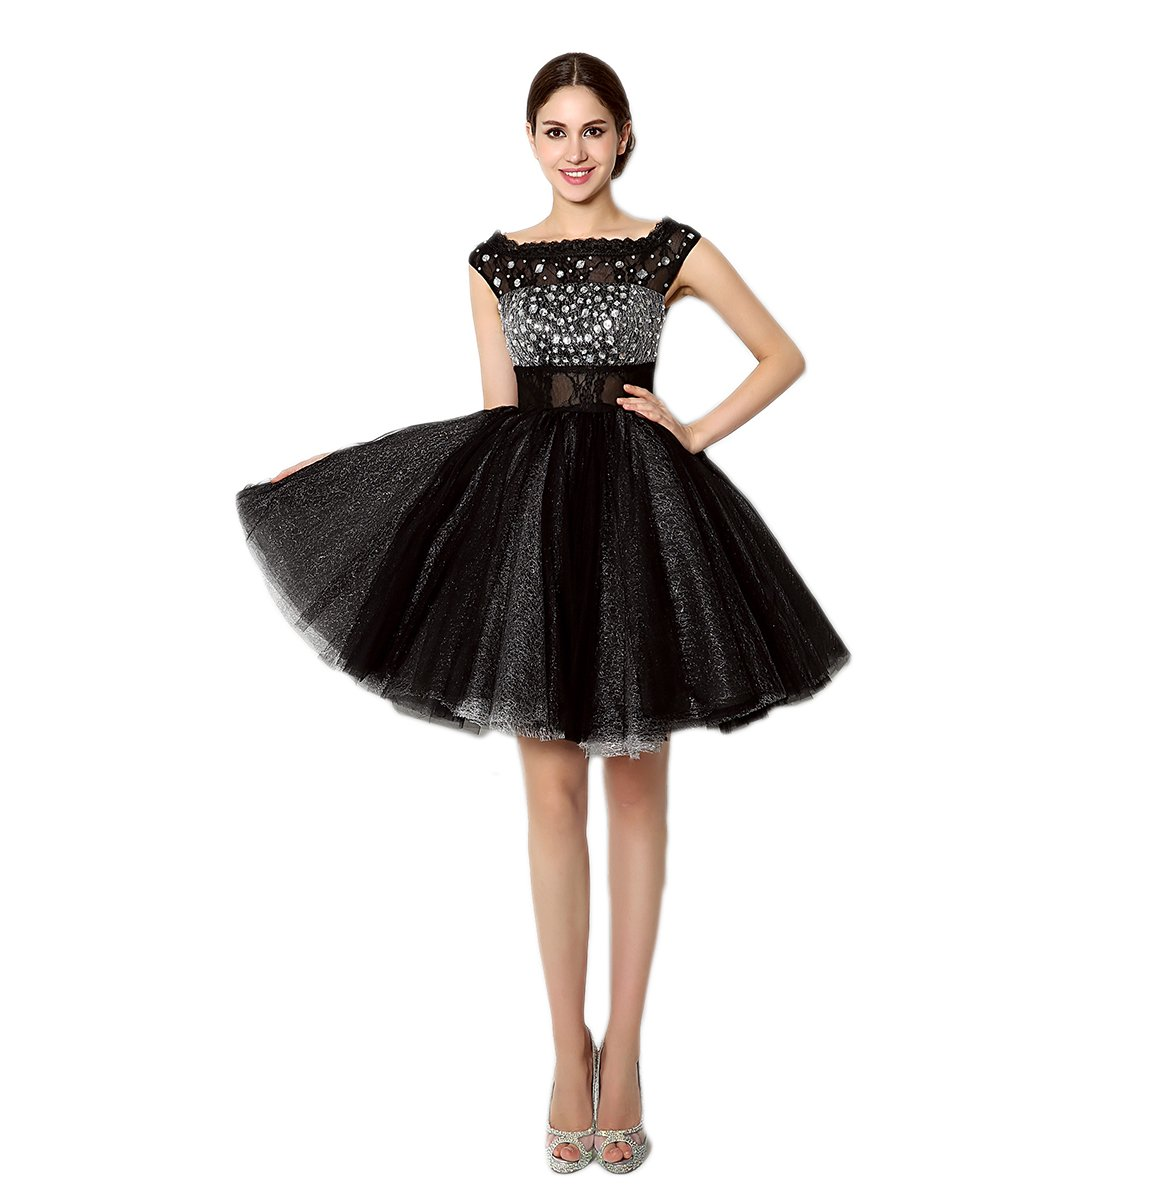 Love Dress Beading Black Short Prom Dress Party Gown Us 16